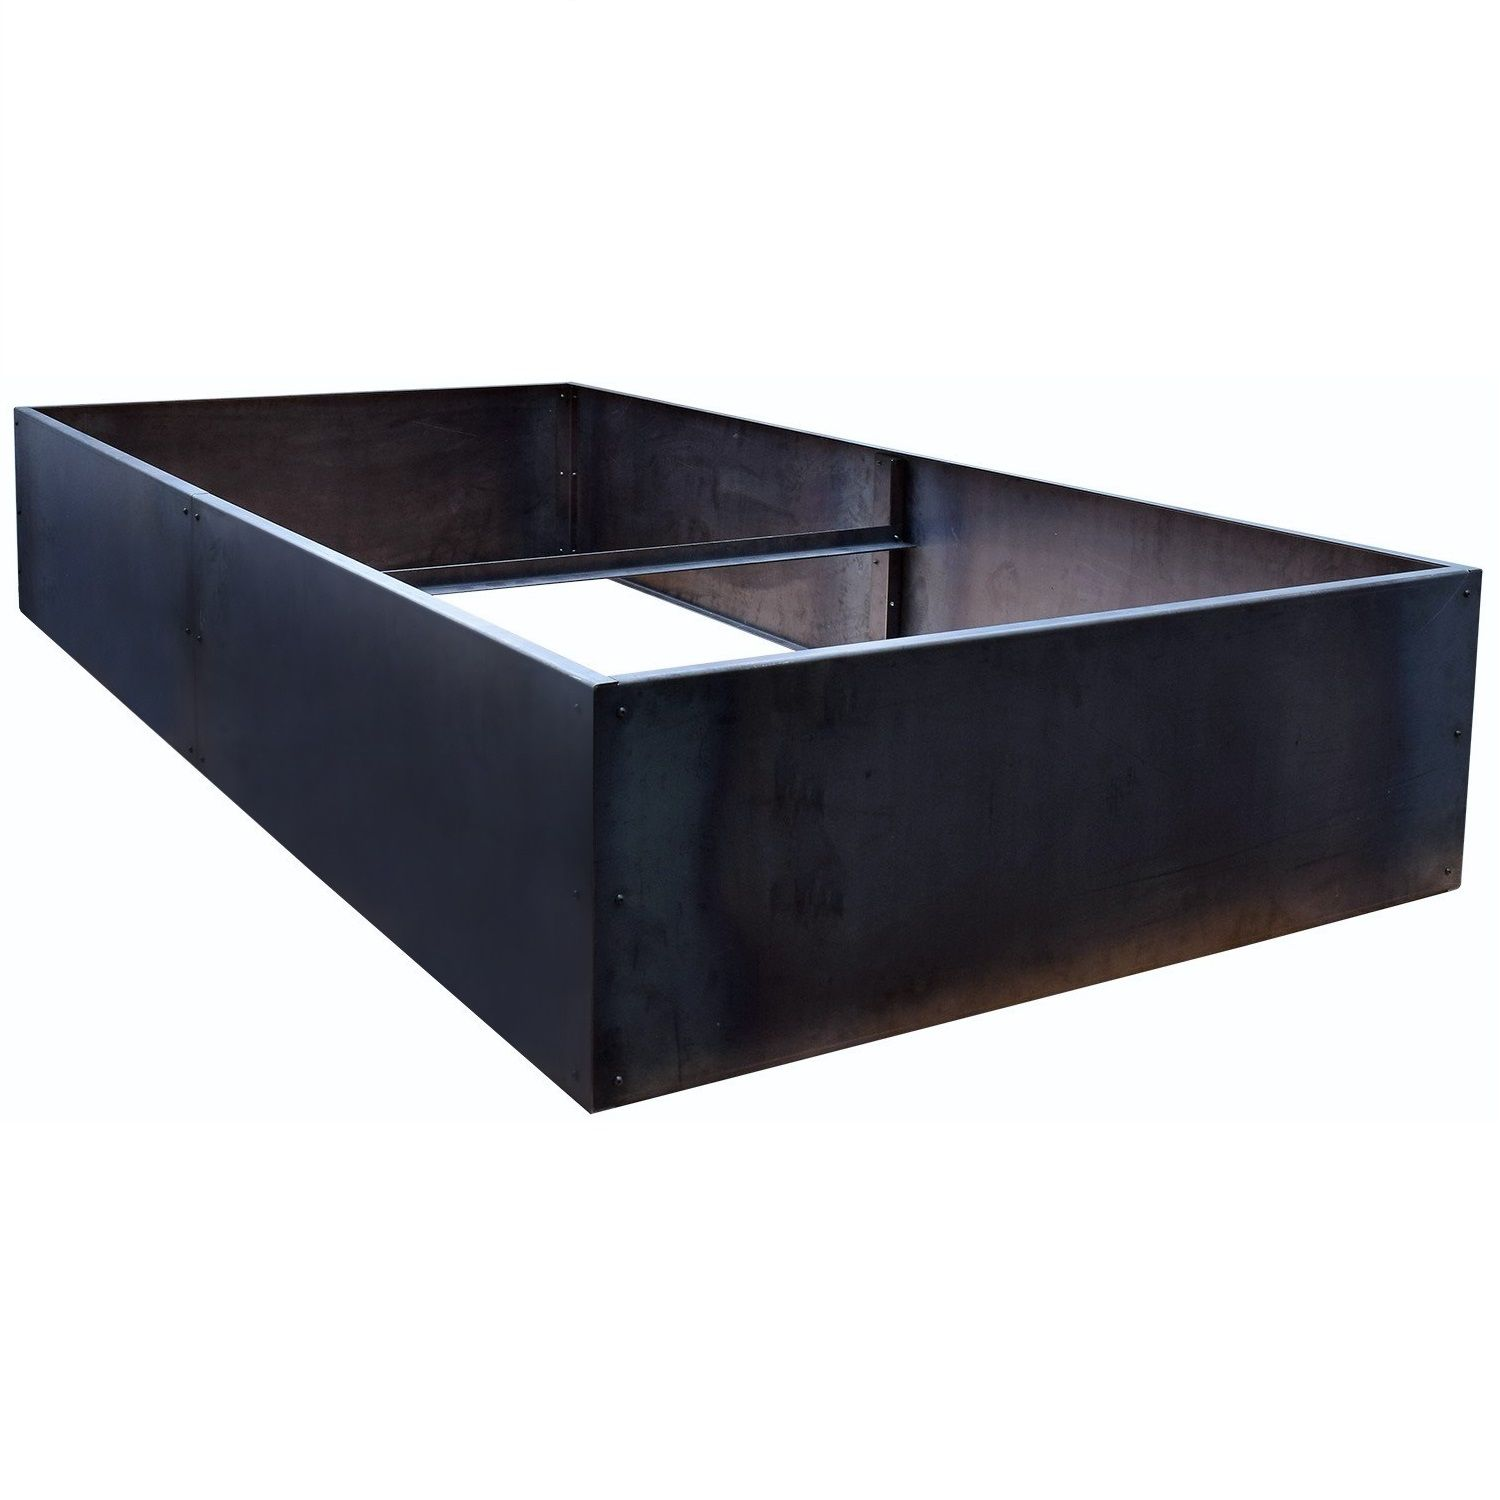 NiceR96 corten steel planter bed